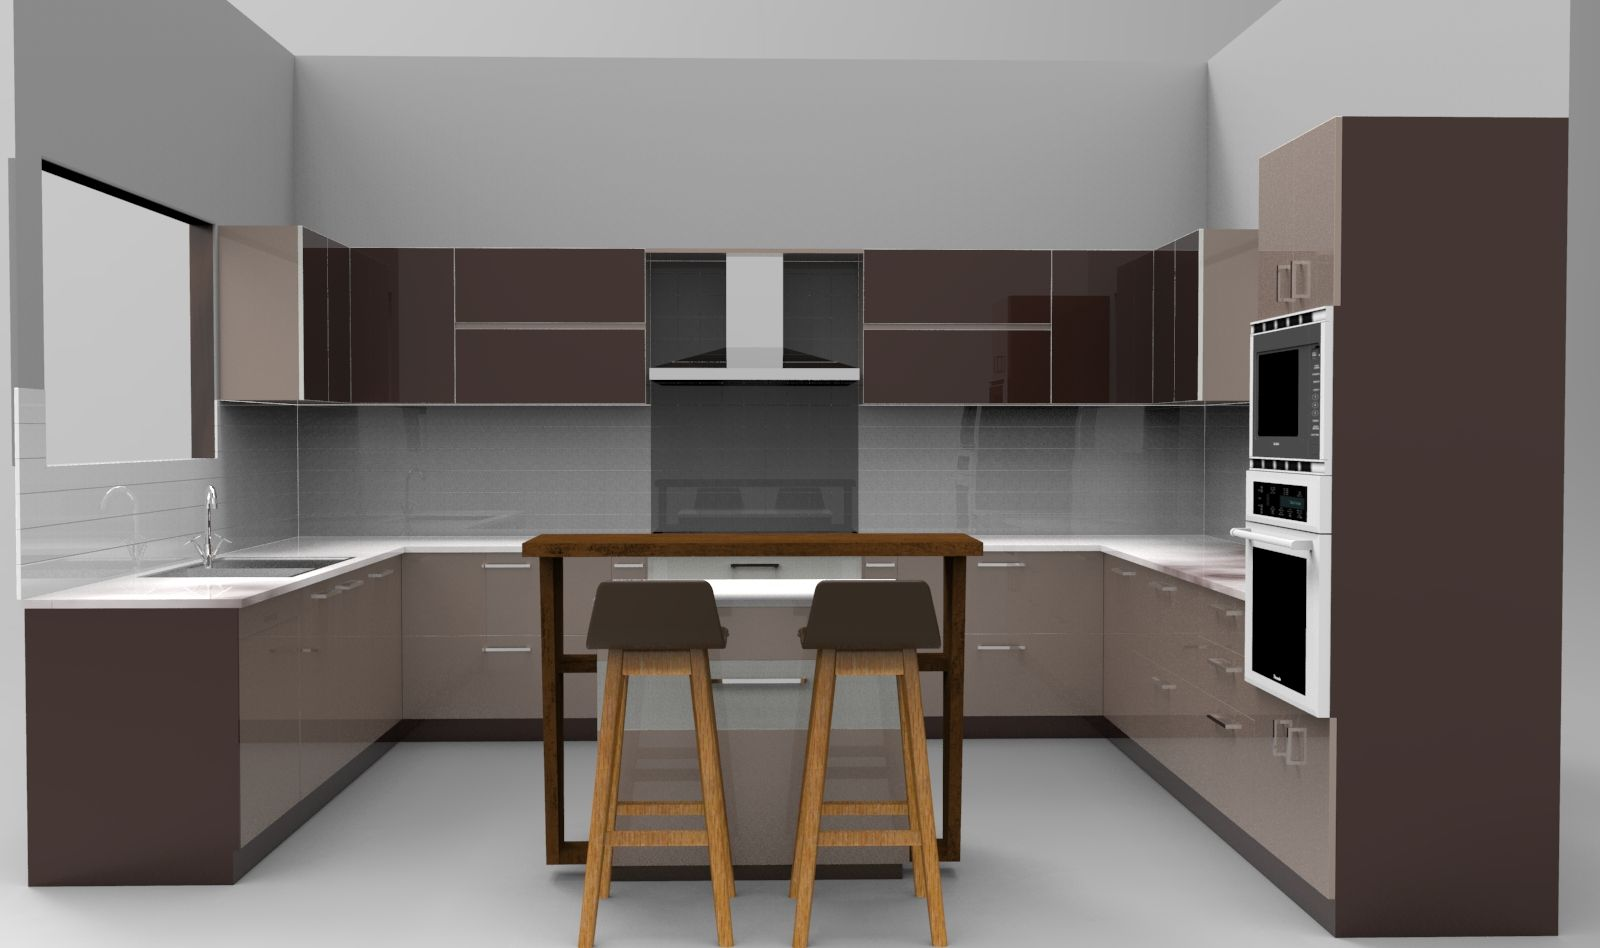 Project Kitchen For Independent Villa Approx Dimensions 14 0 X 14 0 Execution Structure Made Up Of Marine Plywood With Kitchen Design Home Decor Kitchen